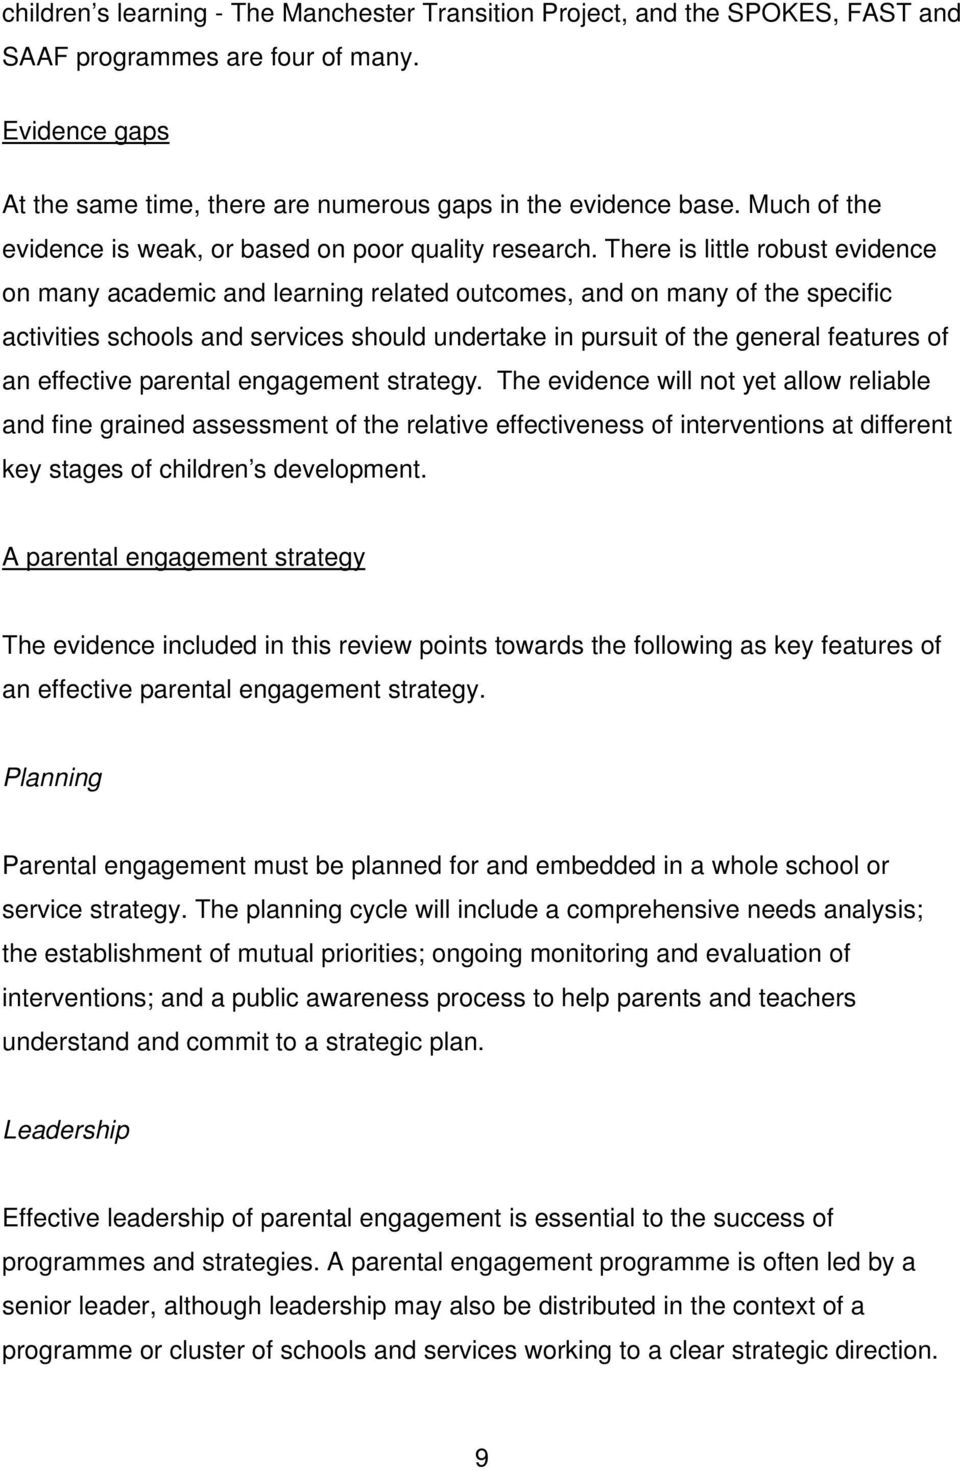 There is little robust evidence on many academic and learning related outcomes, and on many of the specific activities schools and services should undertake in pursuit of the general features of an